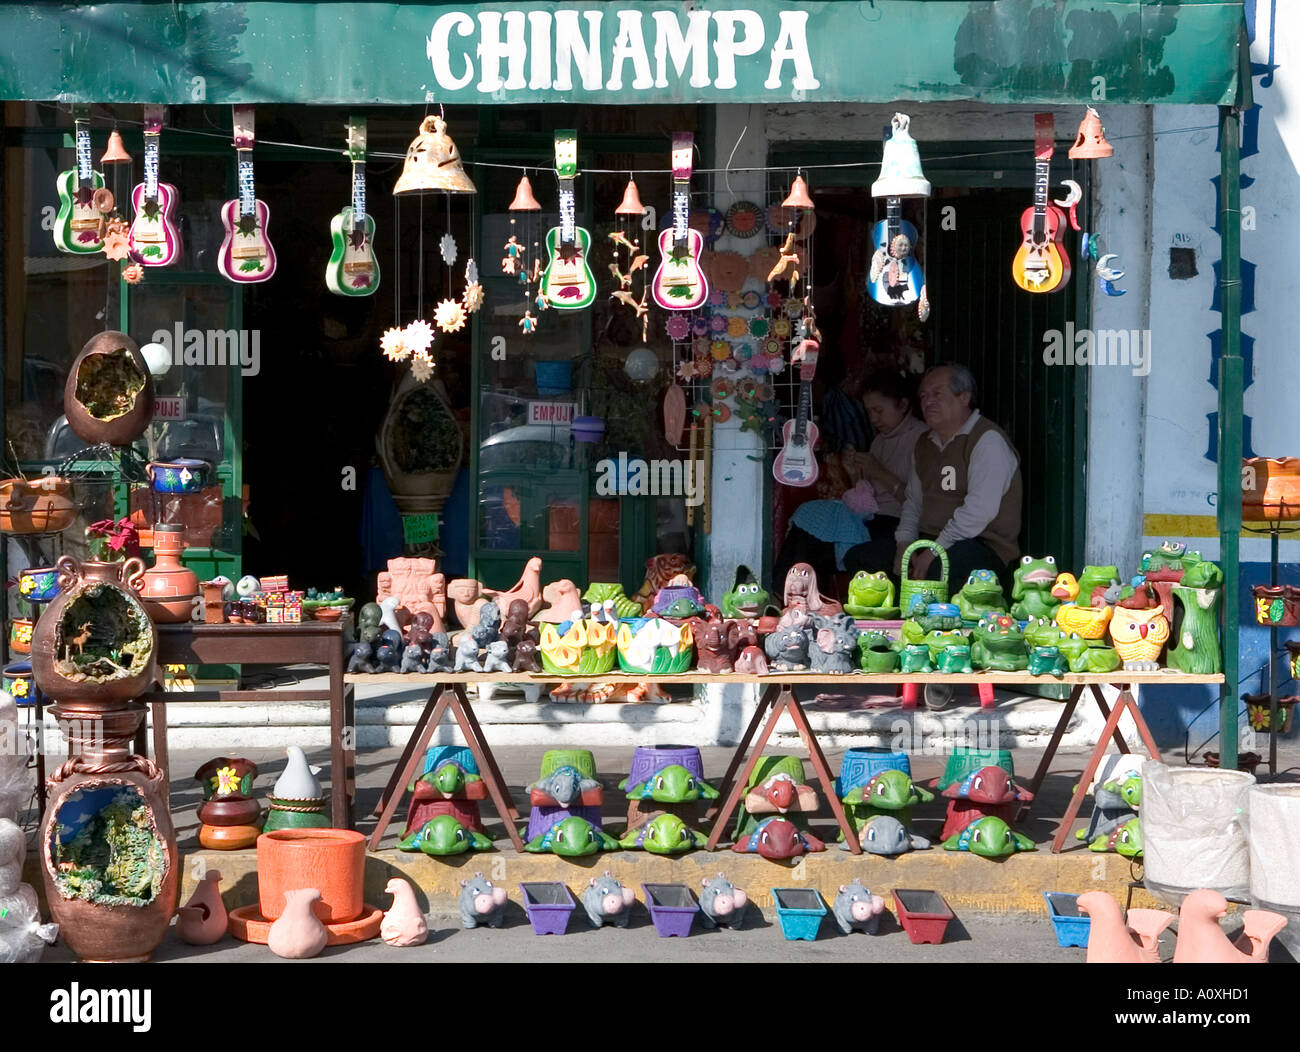 Shop in Mexico City selling odds and ends - Stock Image